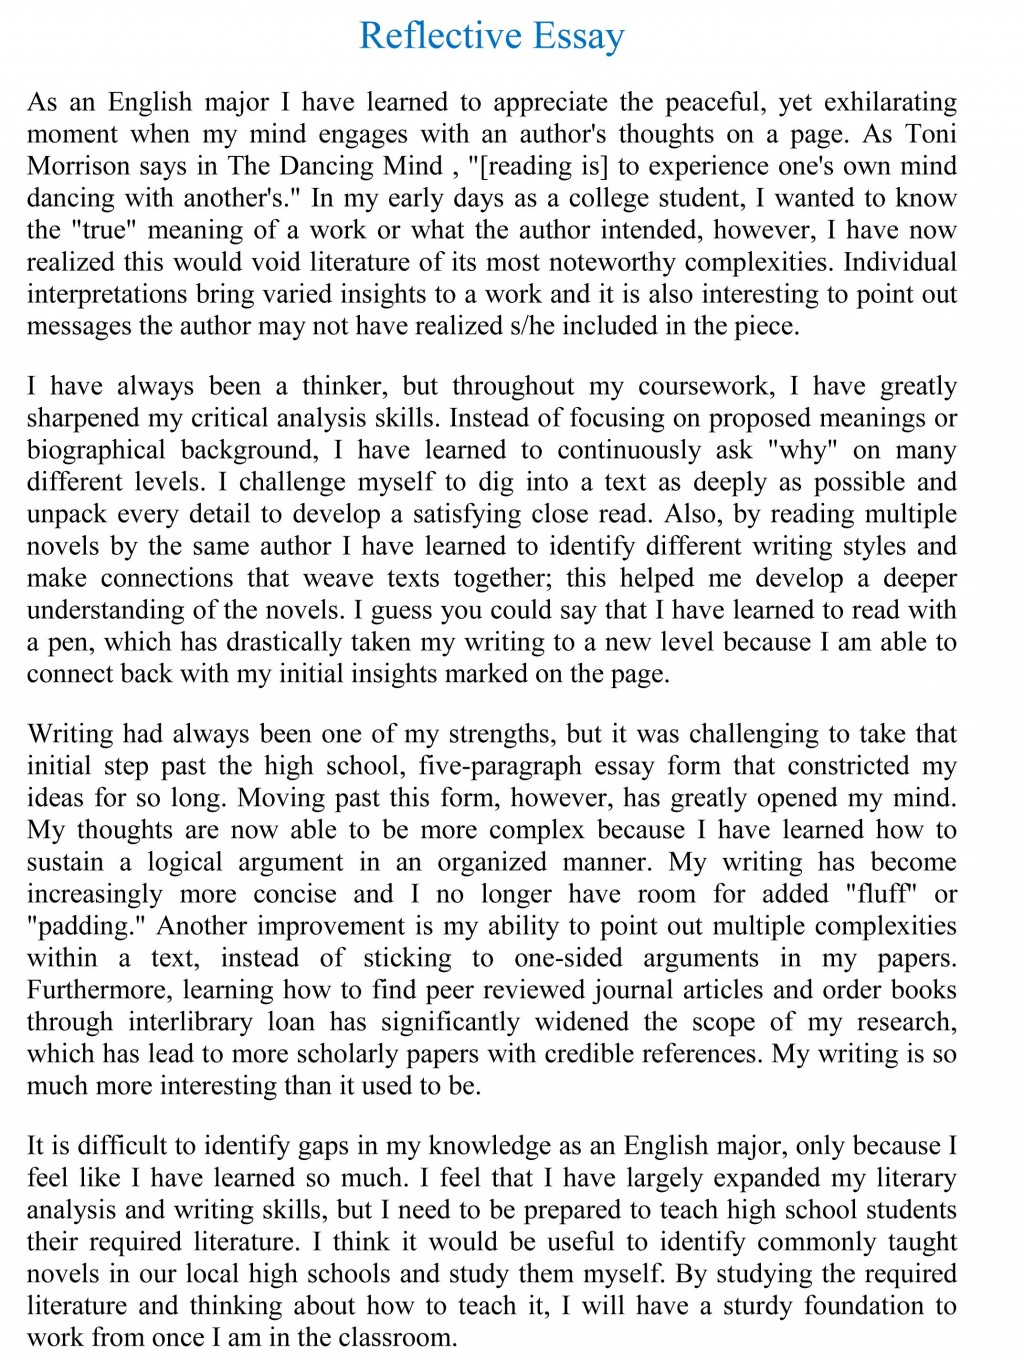 023 Research Paper Reflective Essay Death Penalty Awesome Introduction Large